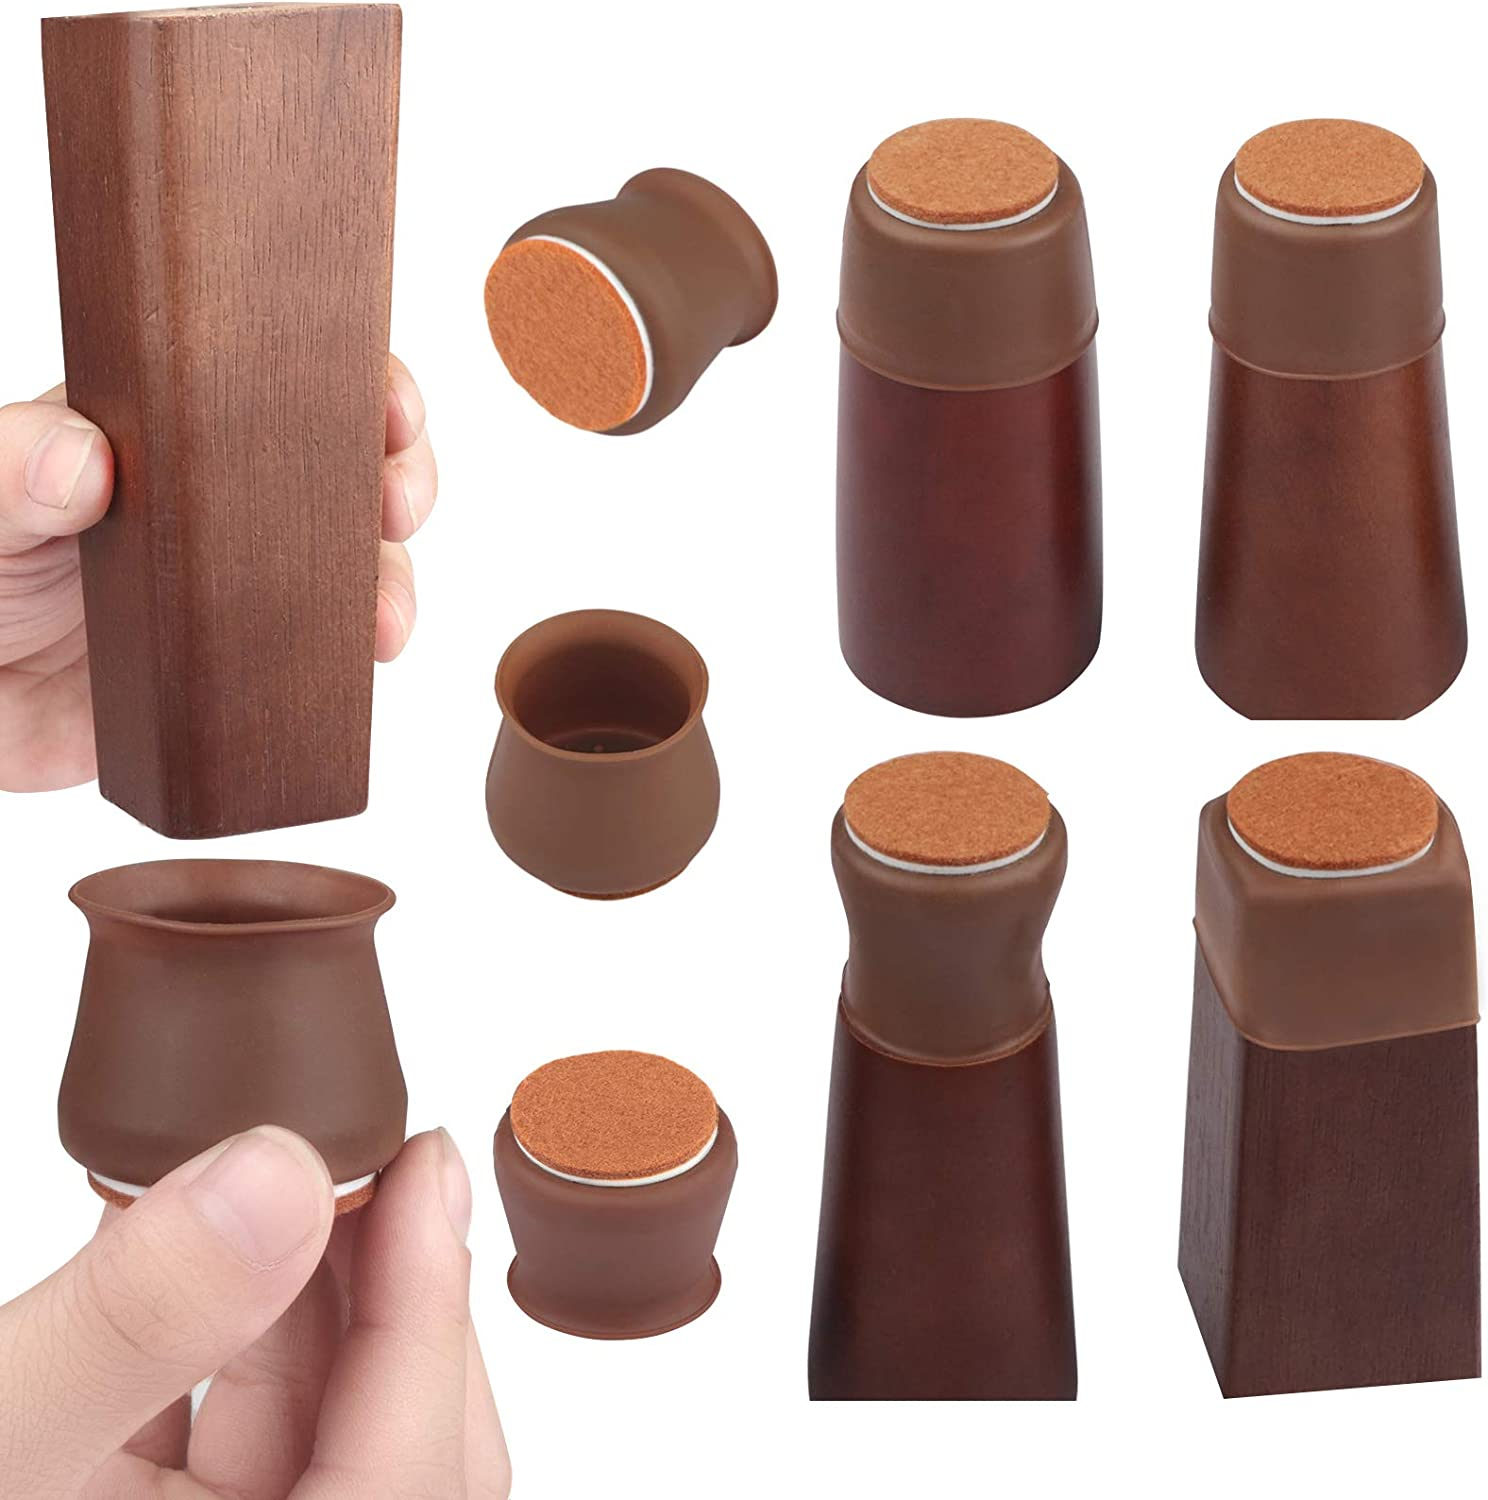 Silicone Chair Leg Caps,32 Pcs Chair Leg Protectors for Hardwood Floors, Chair Leg Floor ProtectorsWith Felt Furniture Pads/Suitable for Round and Square/Non-Slip,Fits 1.18inch to1.57inch (Brown)